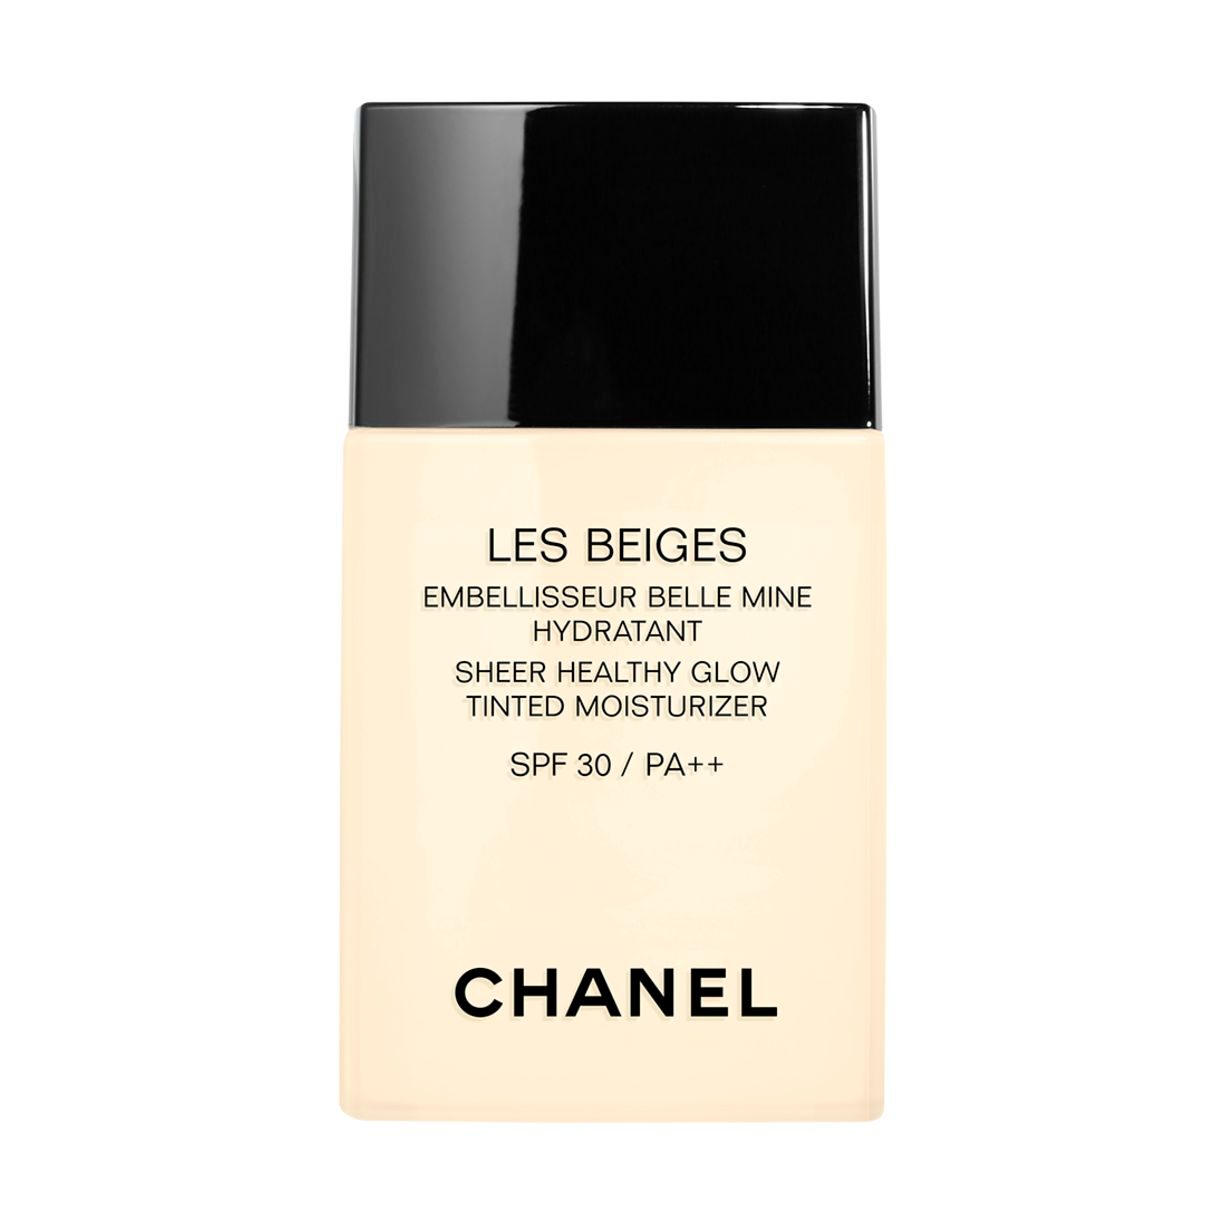 LES BEIGES SHEER HEALTHY GLOW TINTED MOISTURISER SPF 30 / PA++ - LIGHT